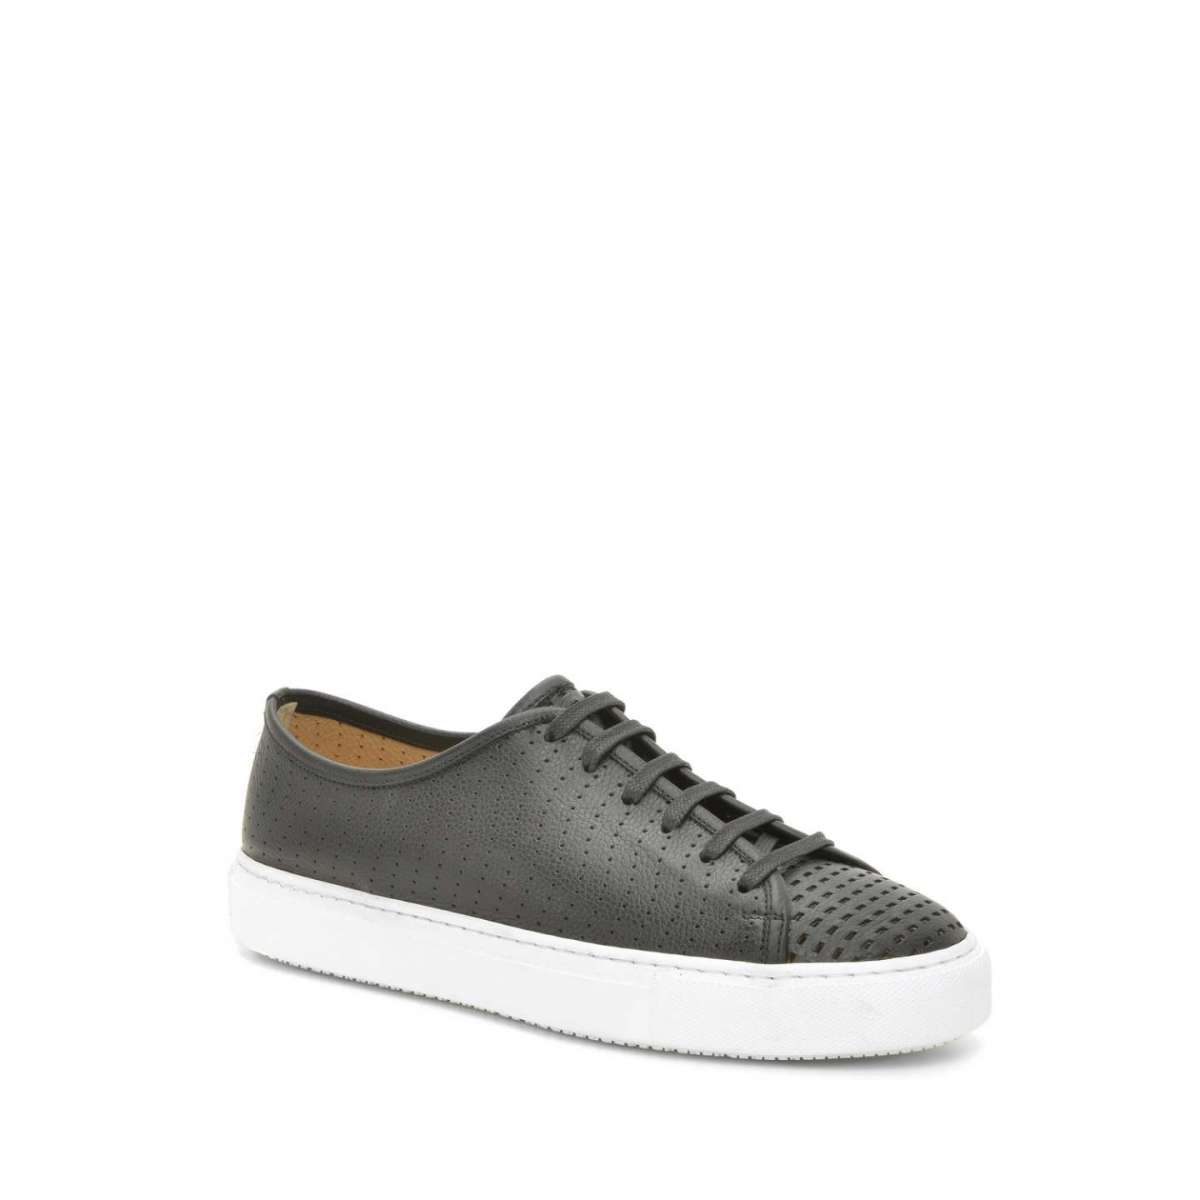 Sneakers nere Fratelli Rossetti